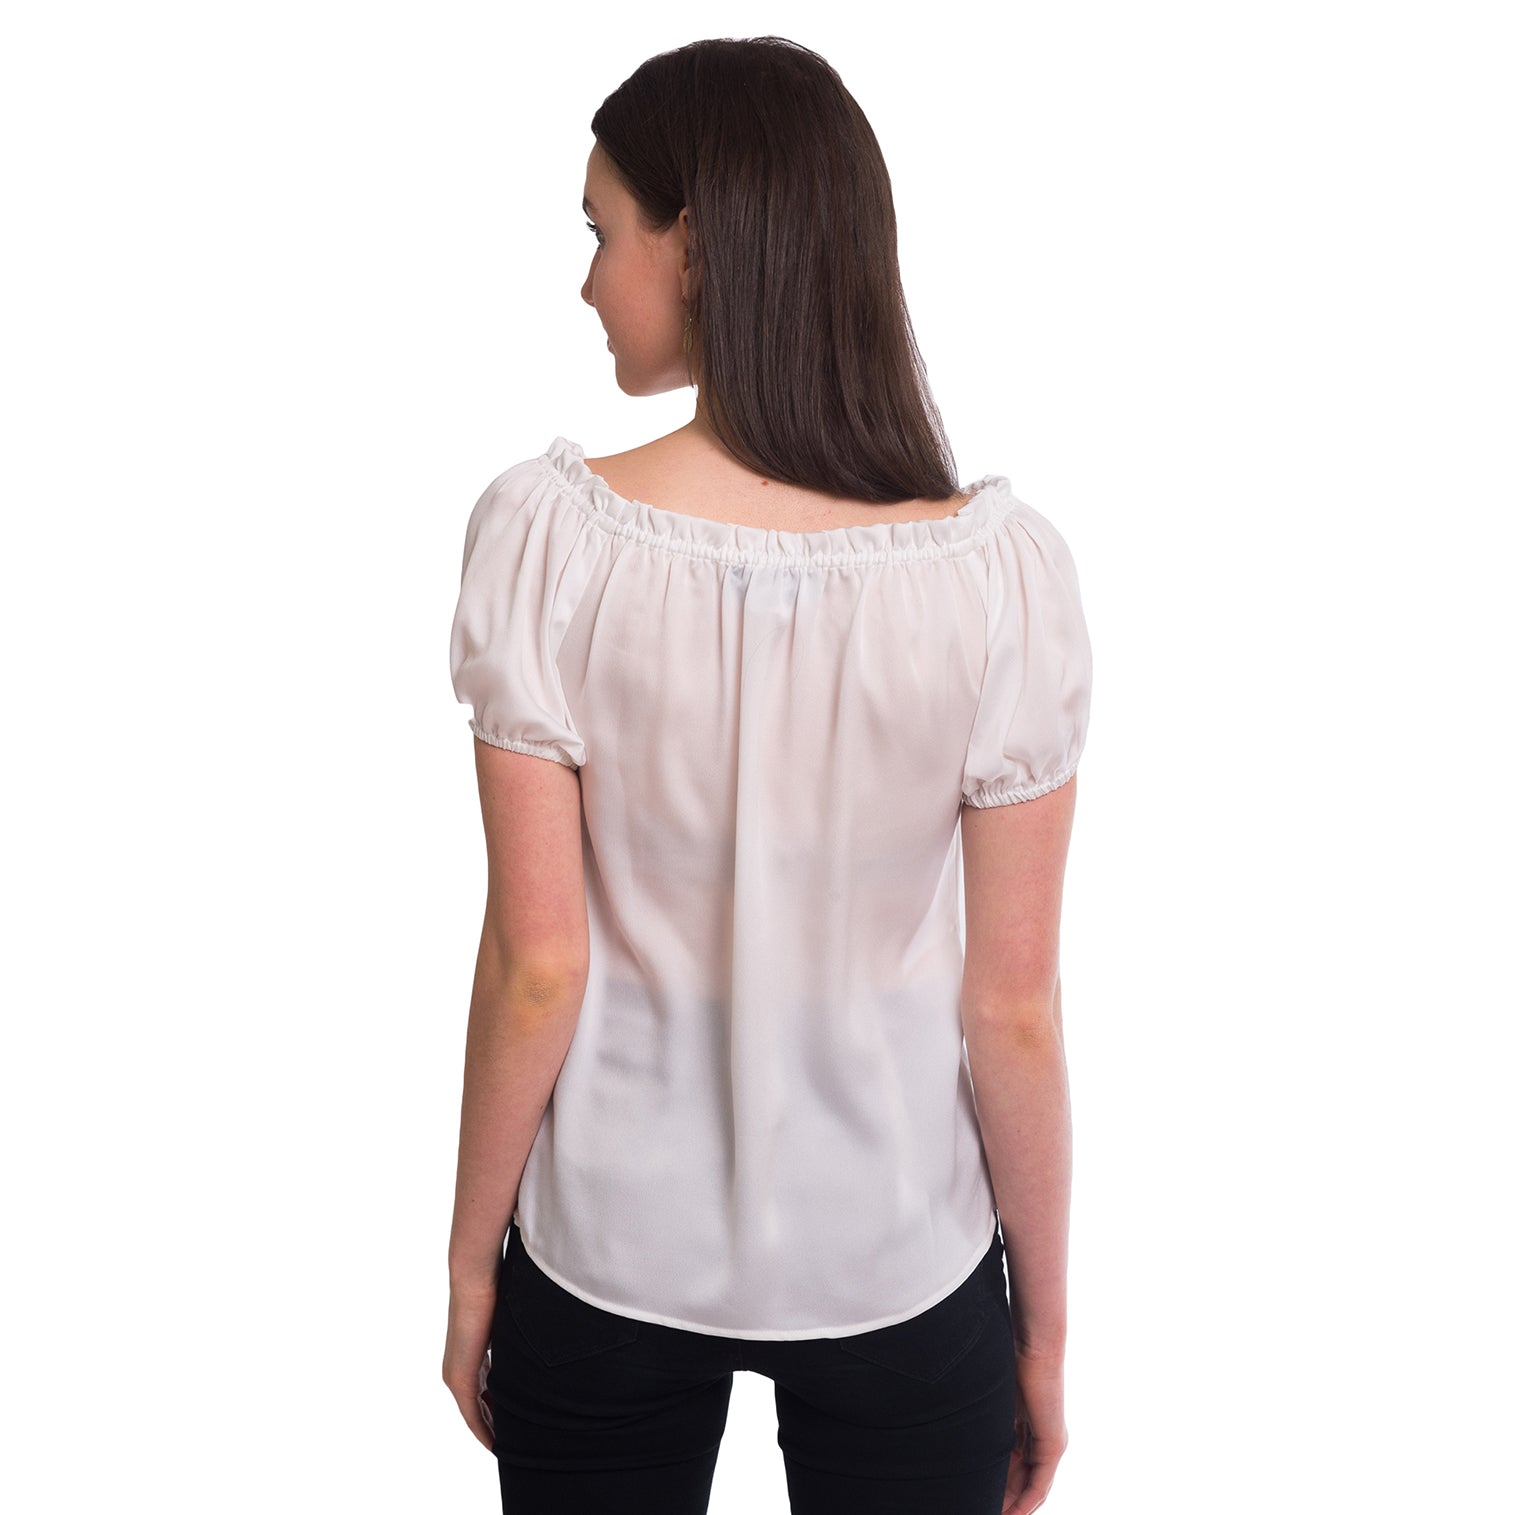 Sadie On/Off Shoulder Blouse in White - Elizabeth Ackerman New York